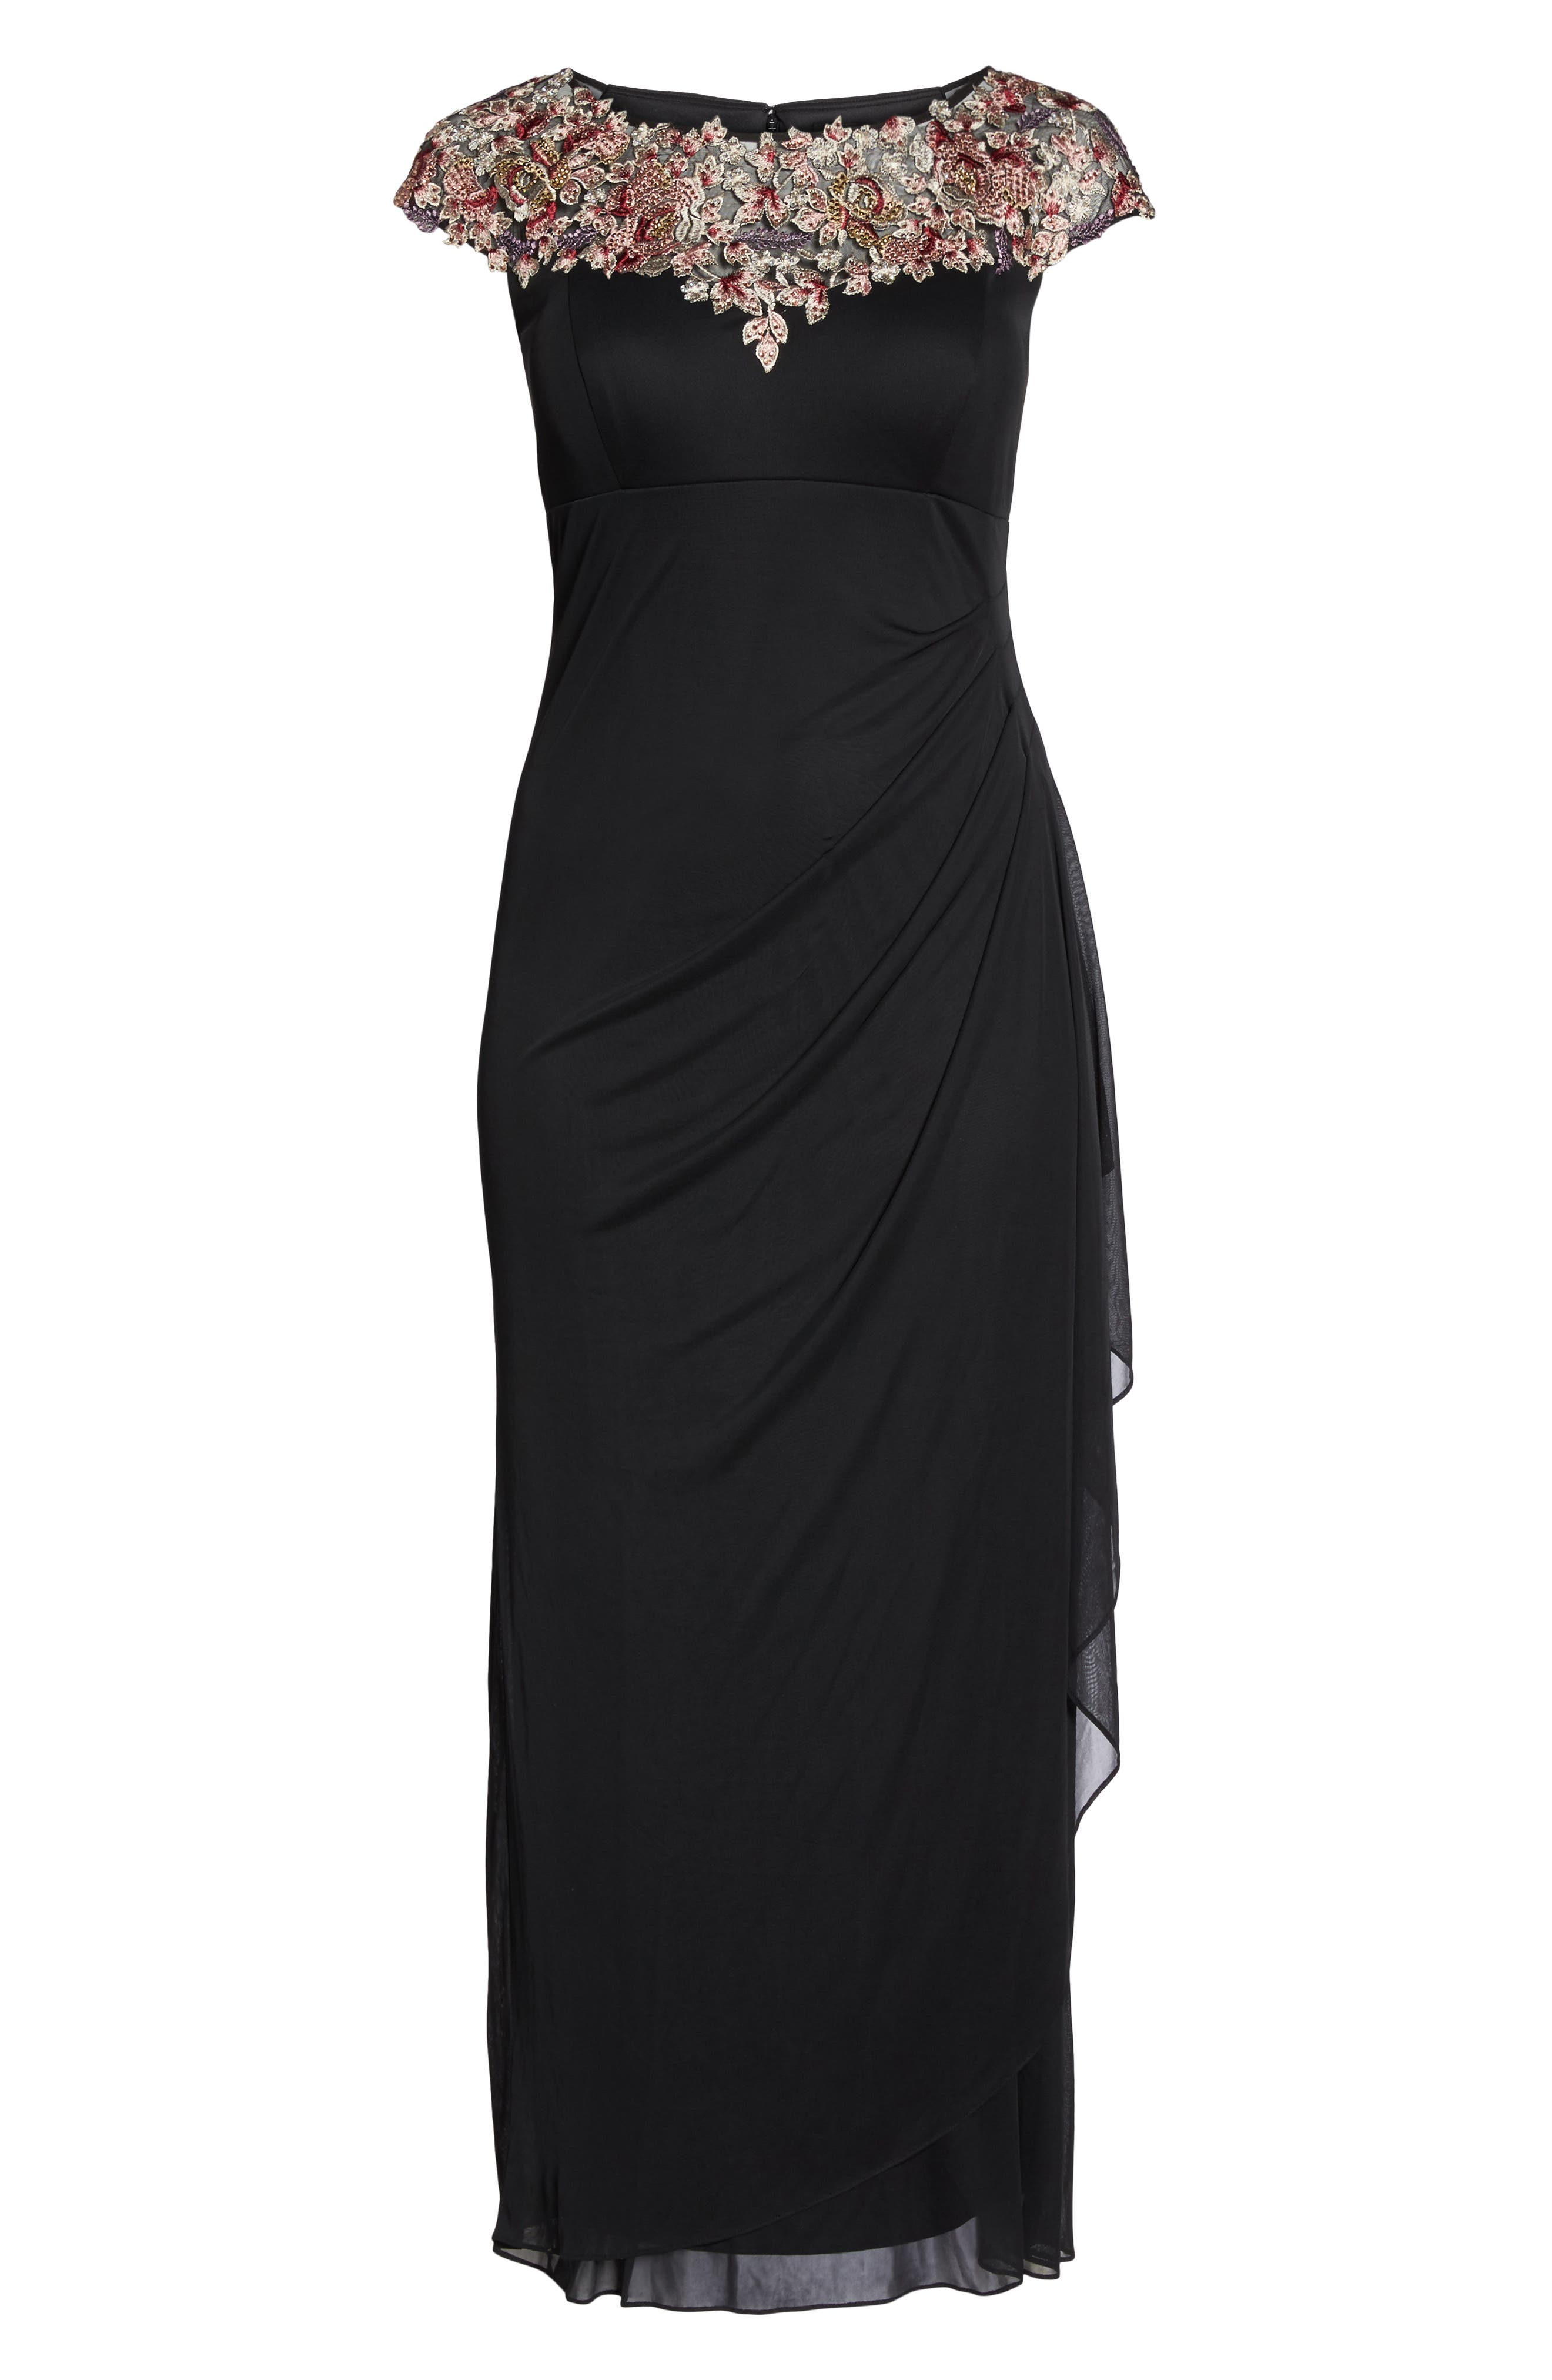 Embroidered Side Ruched Dress,                             Alternate thumbnail 6, color,                             Black/ Multi